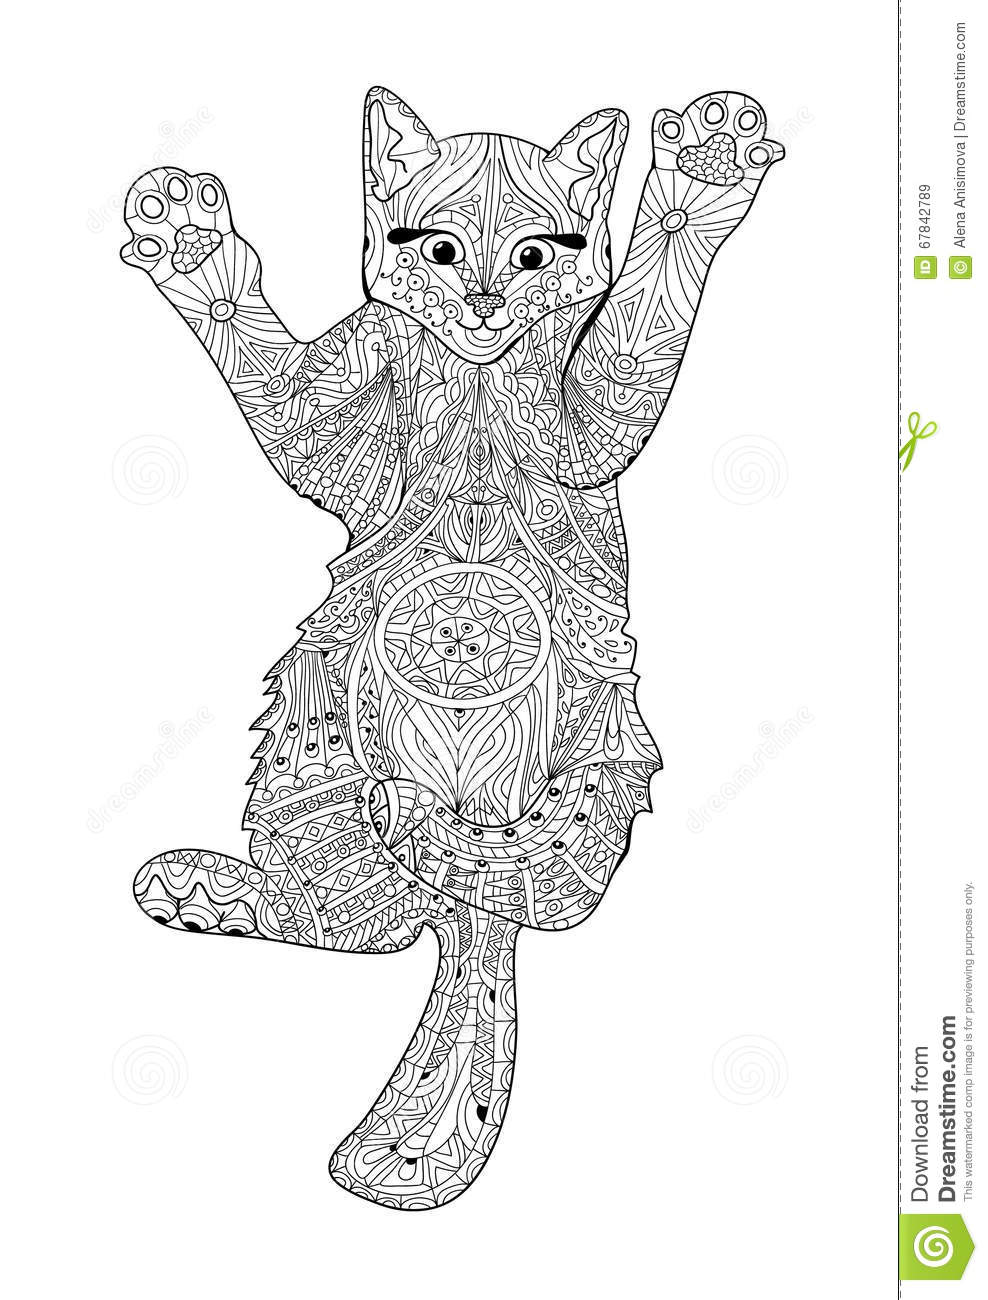 Royalty Free Vector Download Funny Kitten